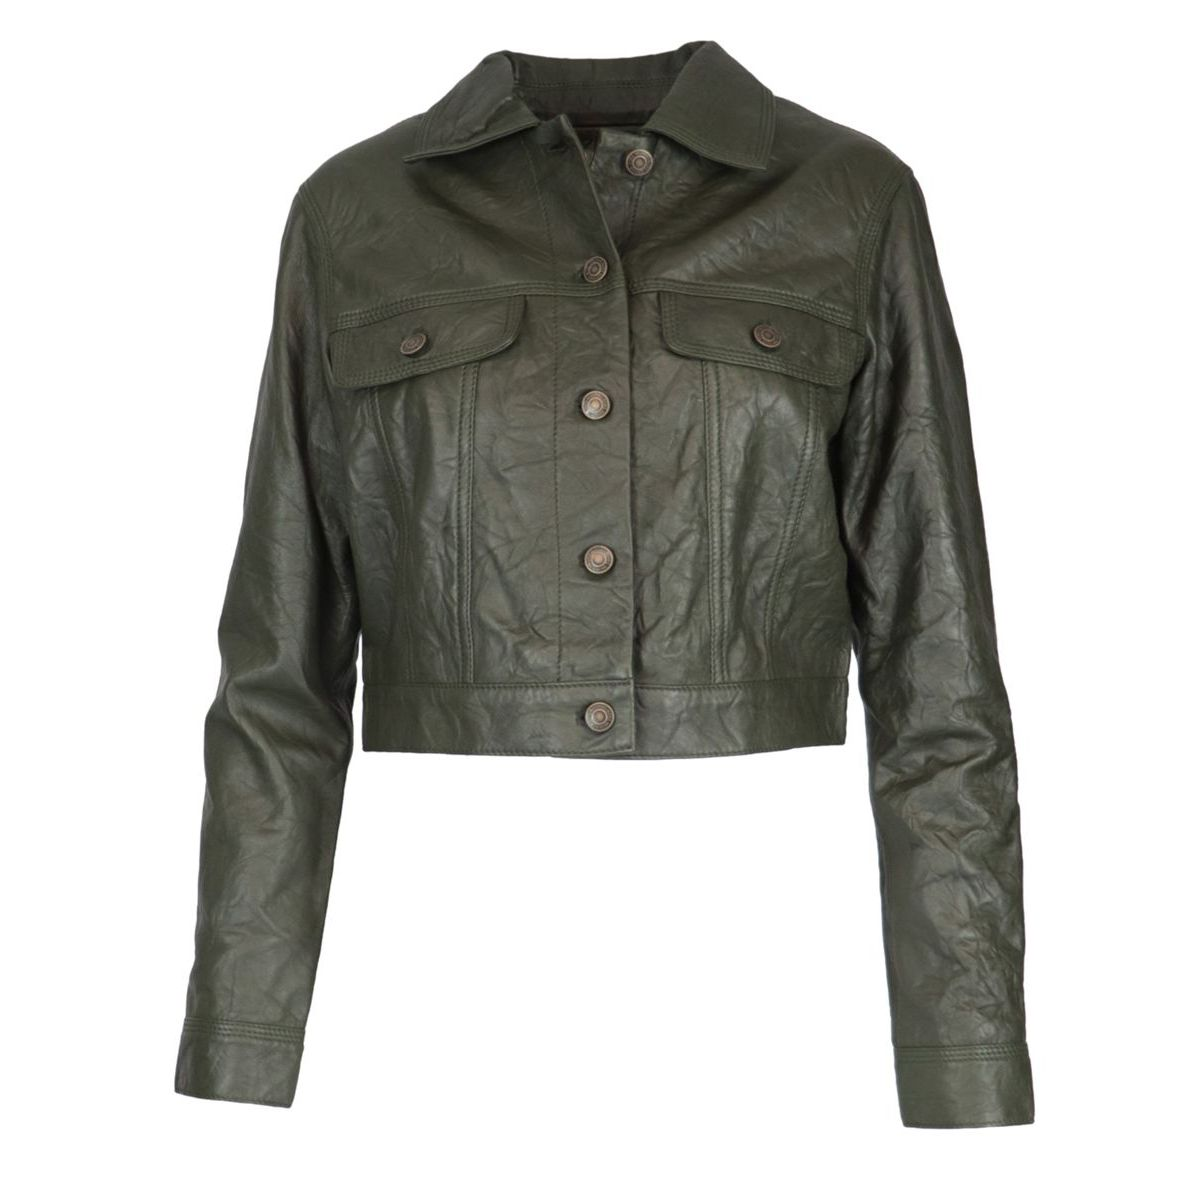 Leather jacket with collar and buttons Ivy Michael Kors